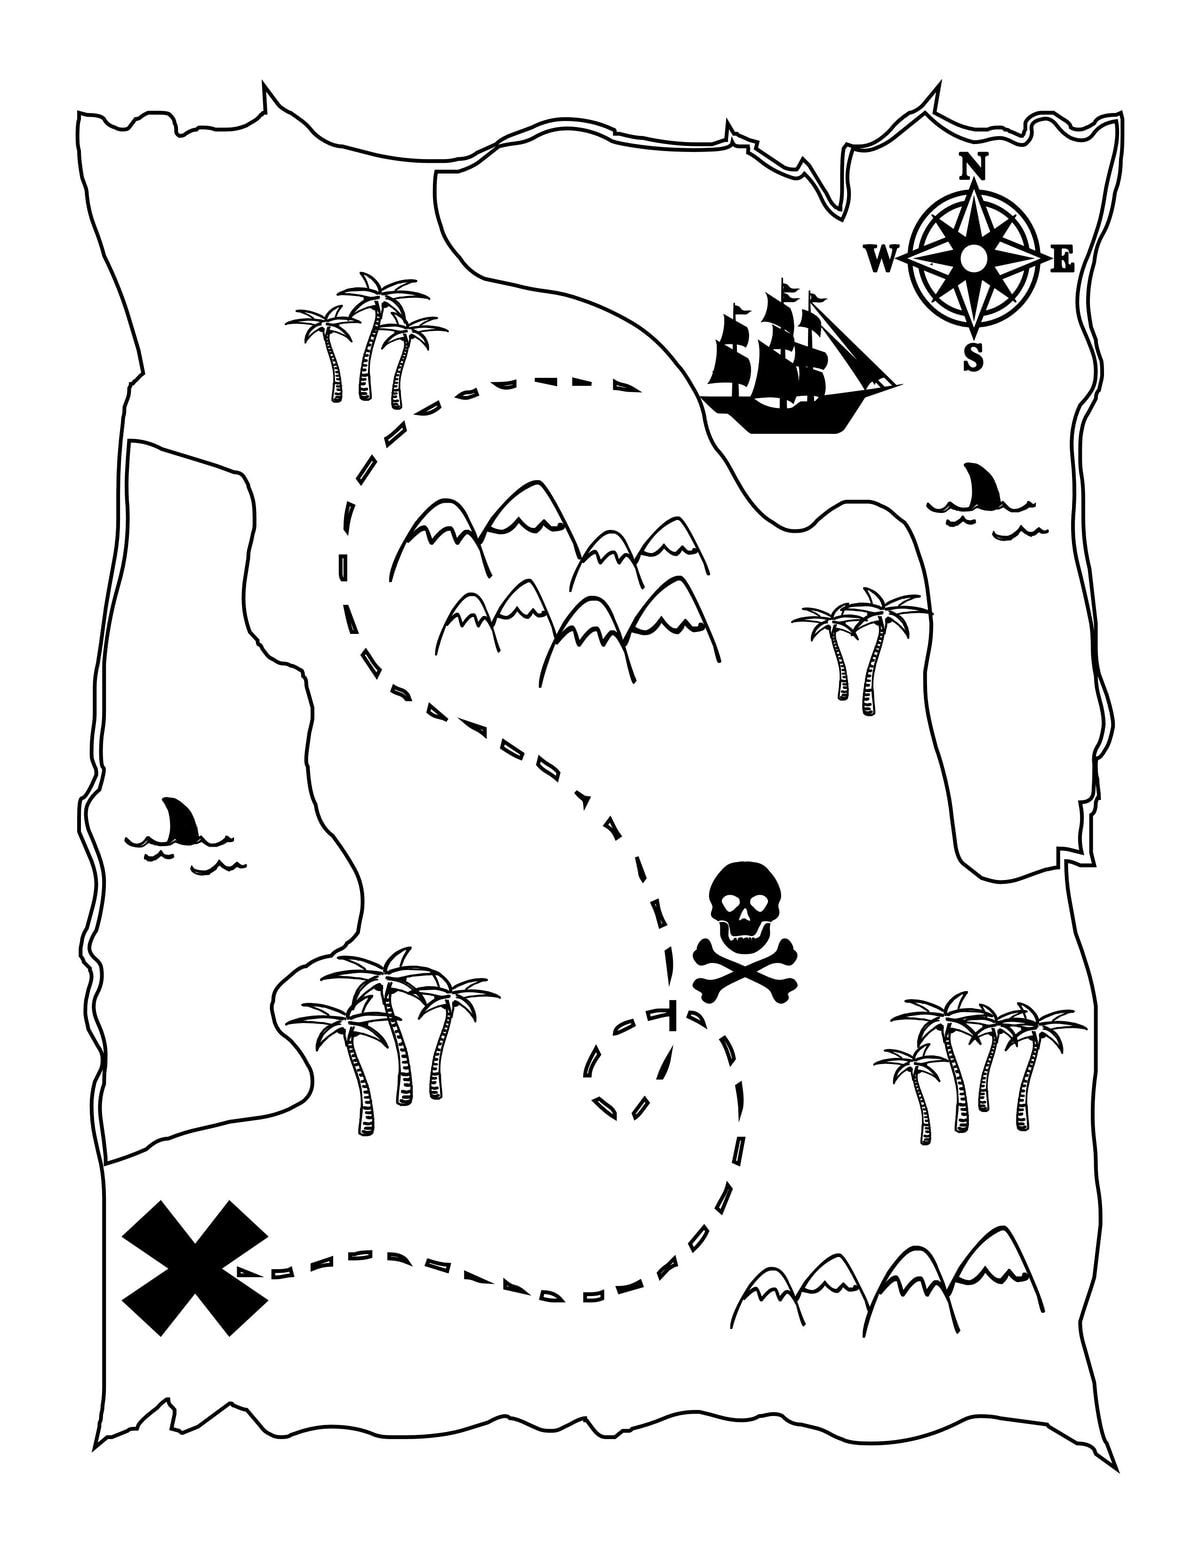 pirate map coloring page pirate map picture clipartsco pirate page map coloring